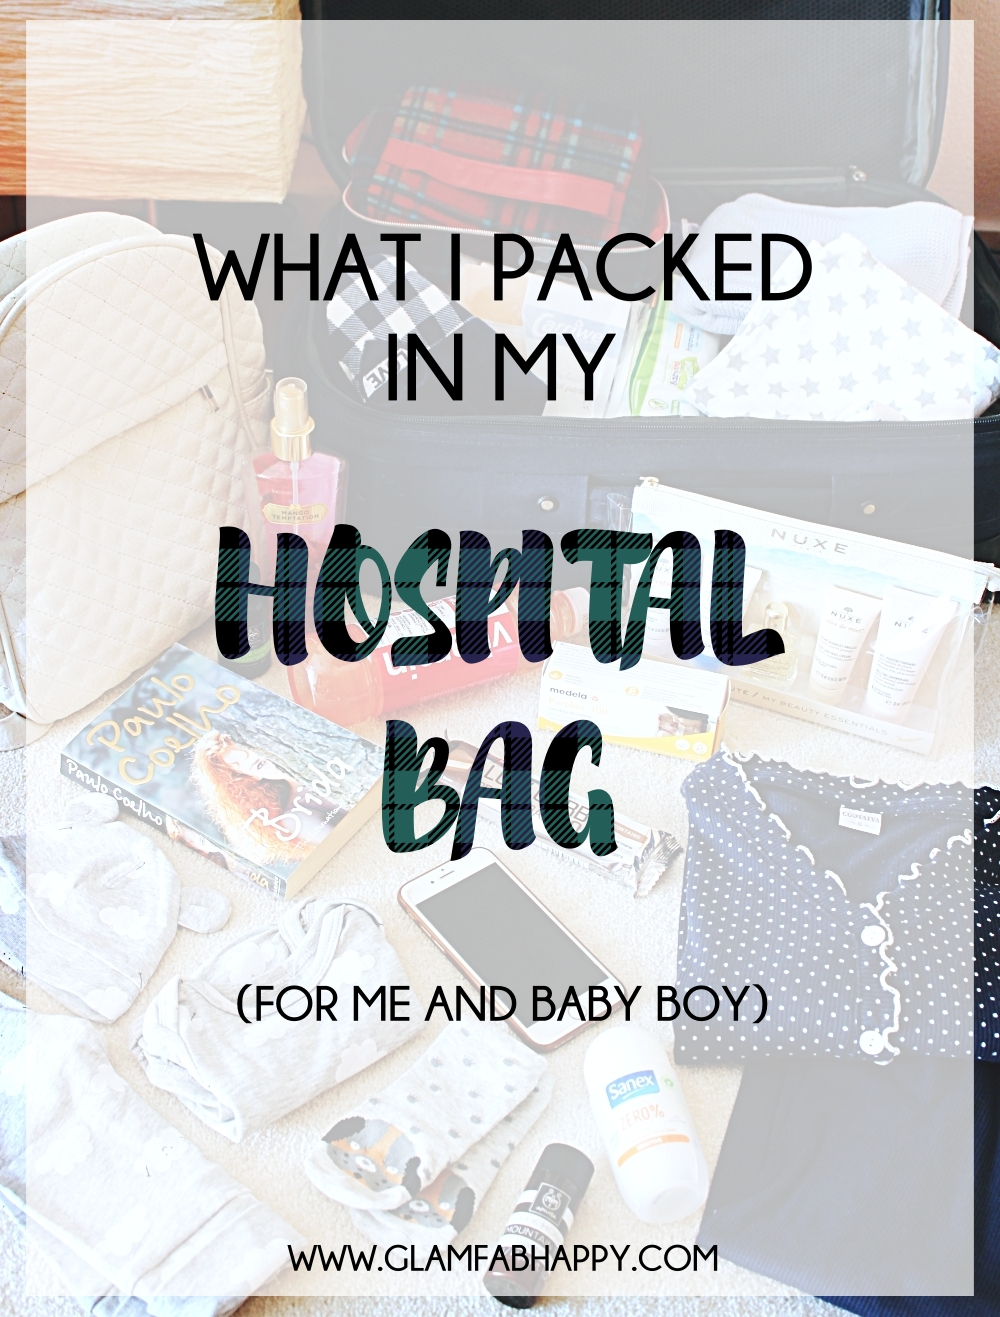 what I packed in my hospital bag for me and baby boy, hospital bag checklist